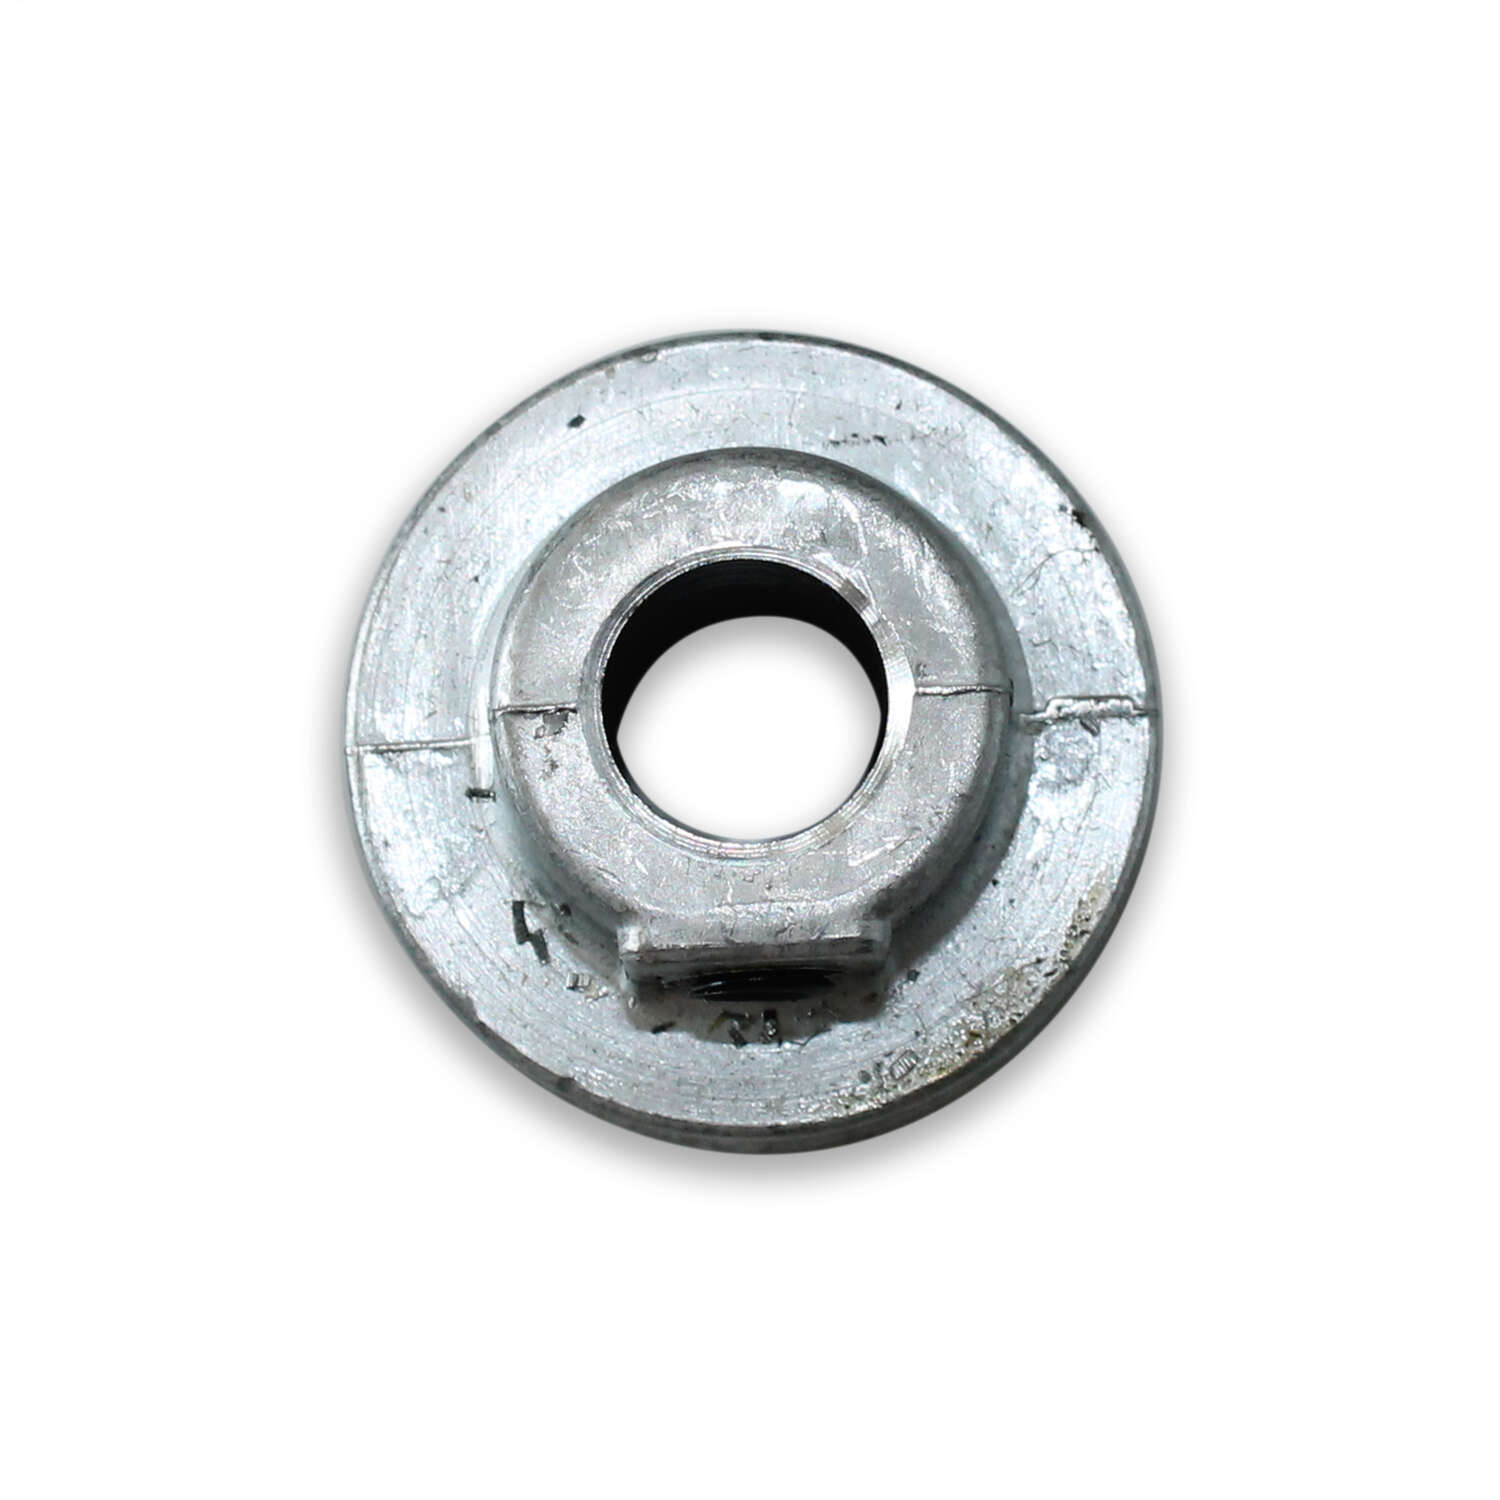 Chicago Die Cast Single V Grooved Pulley A 1-1/2 in. x 1/2 in. Bulk